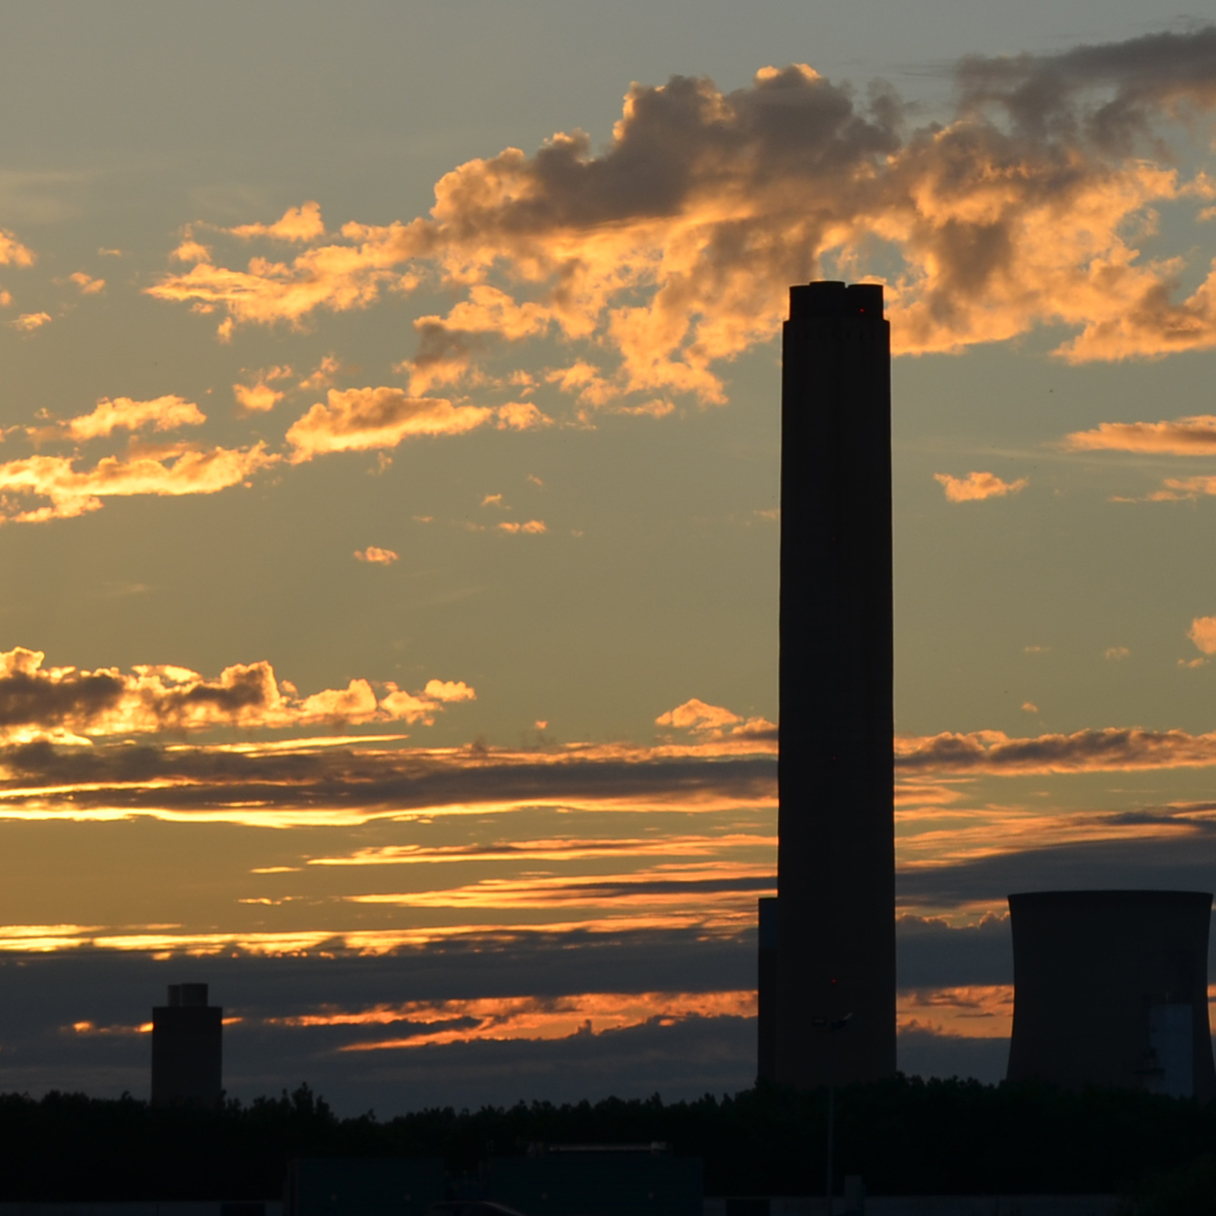 SUNSET IN DIDCOT by Gill Cranshaw